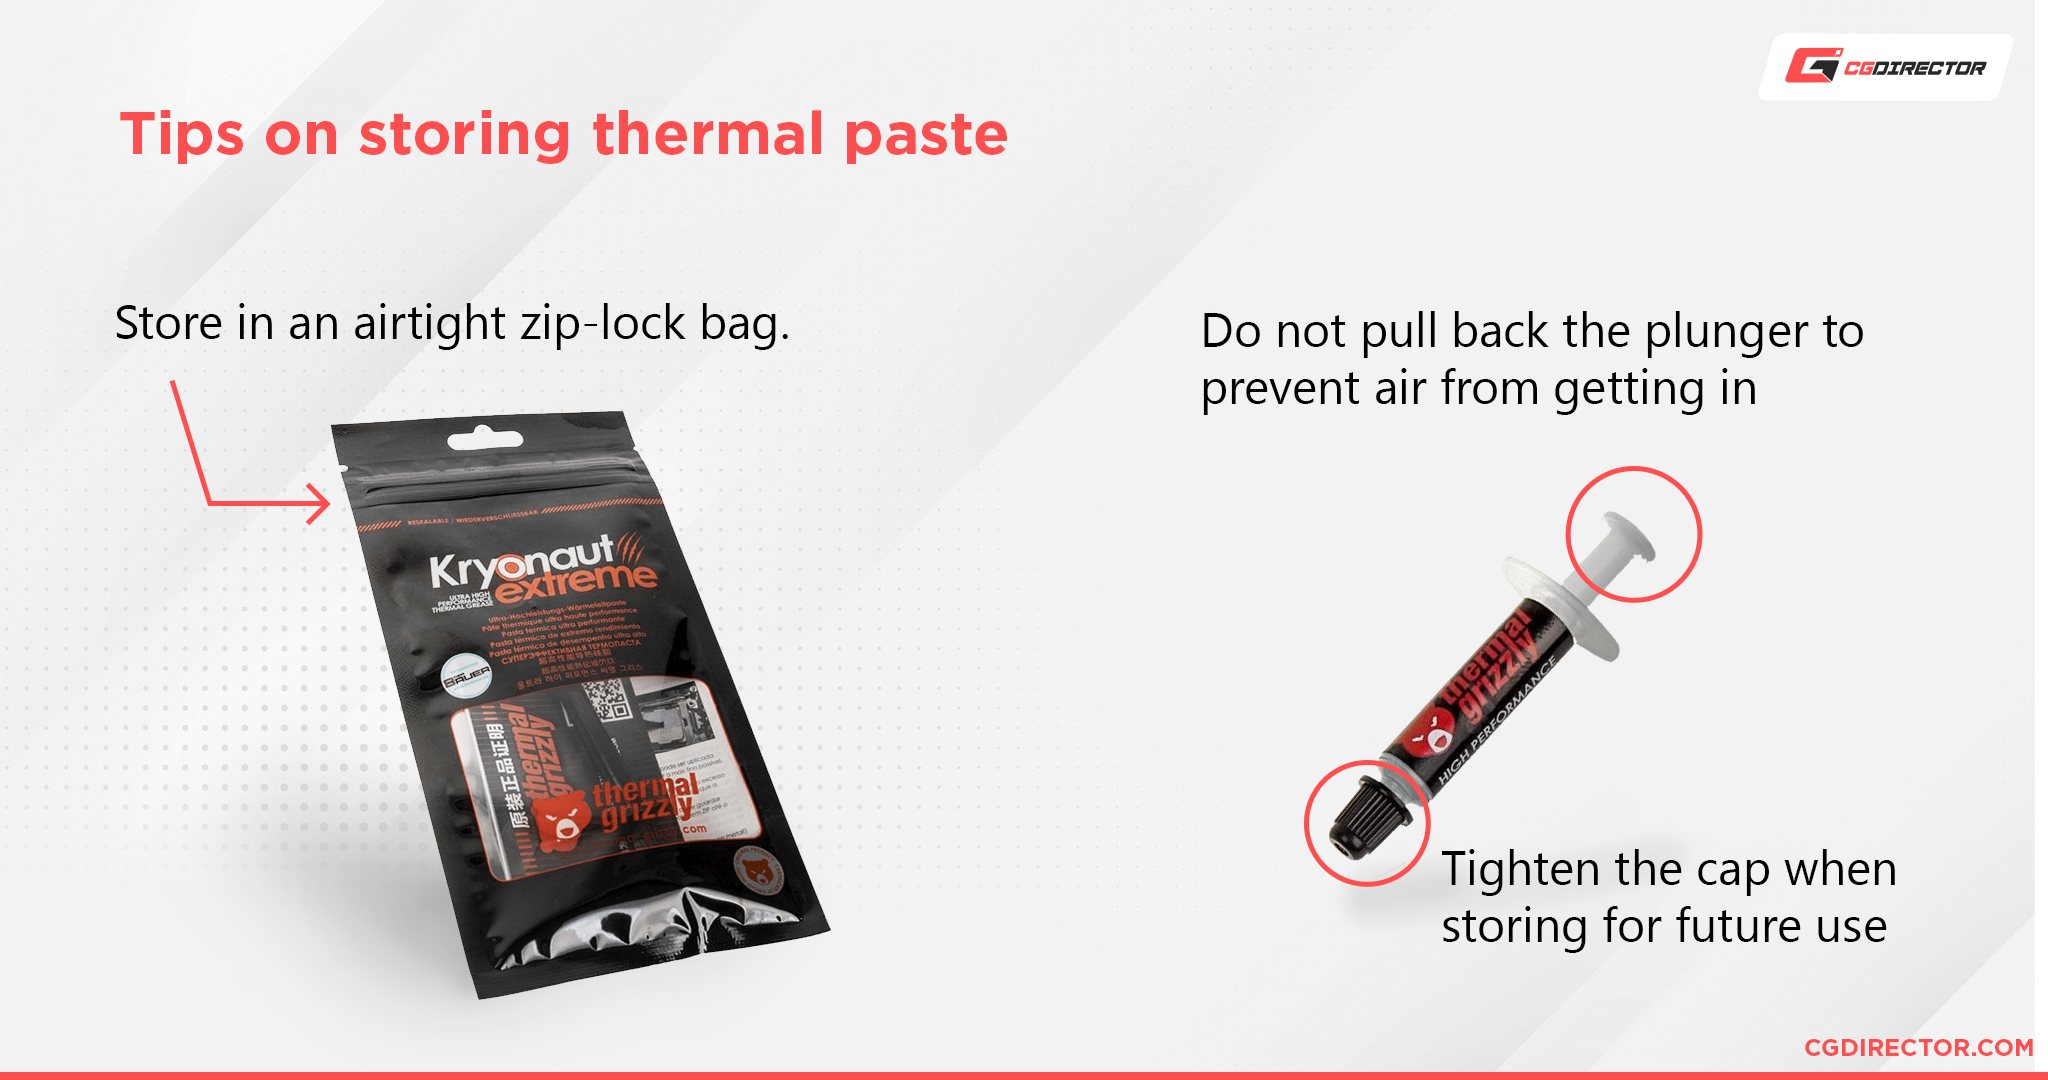 Tips on storing thermal paste